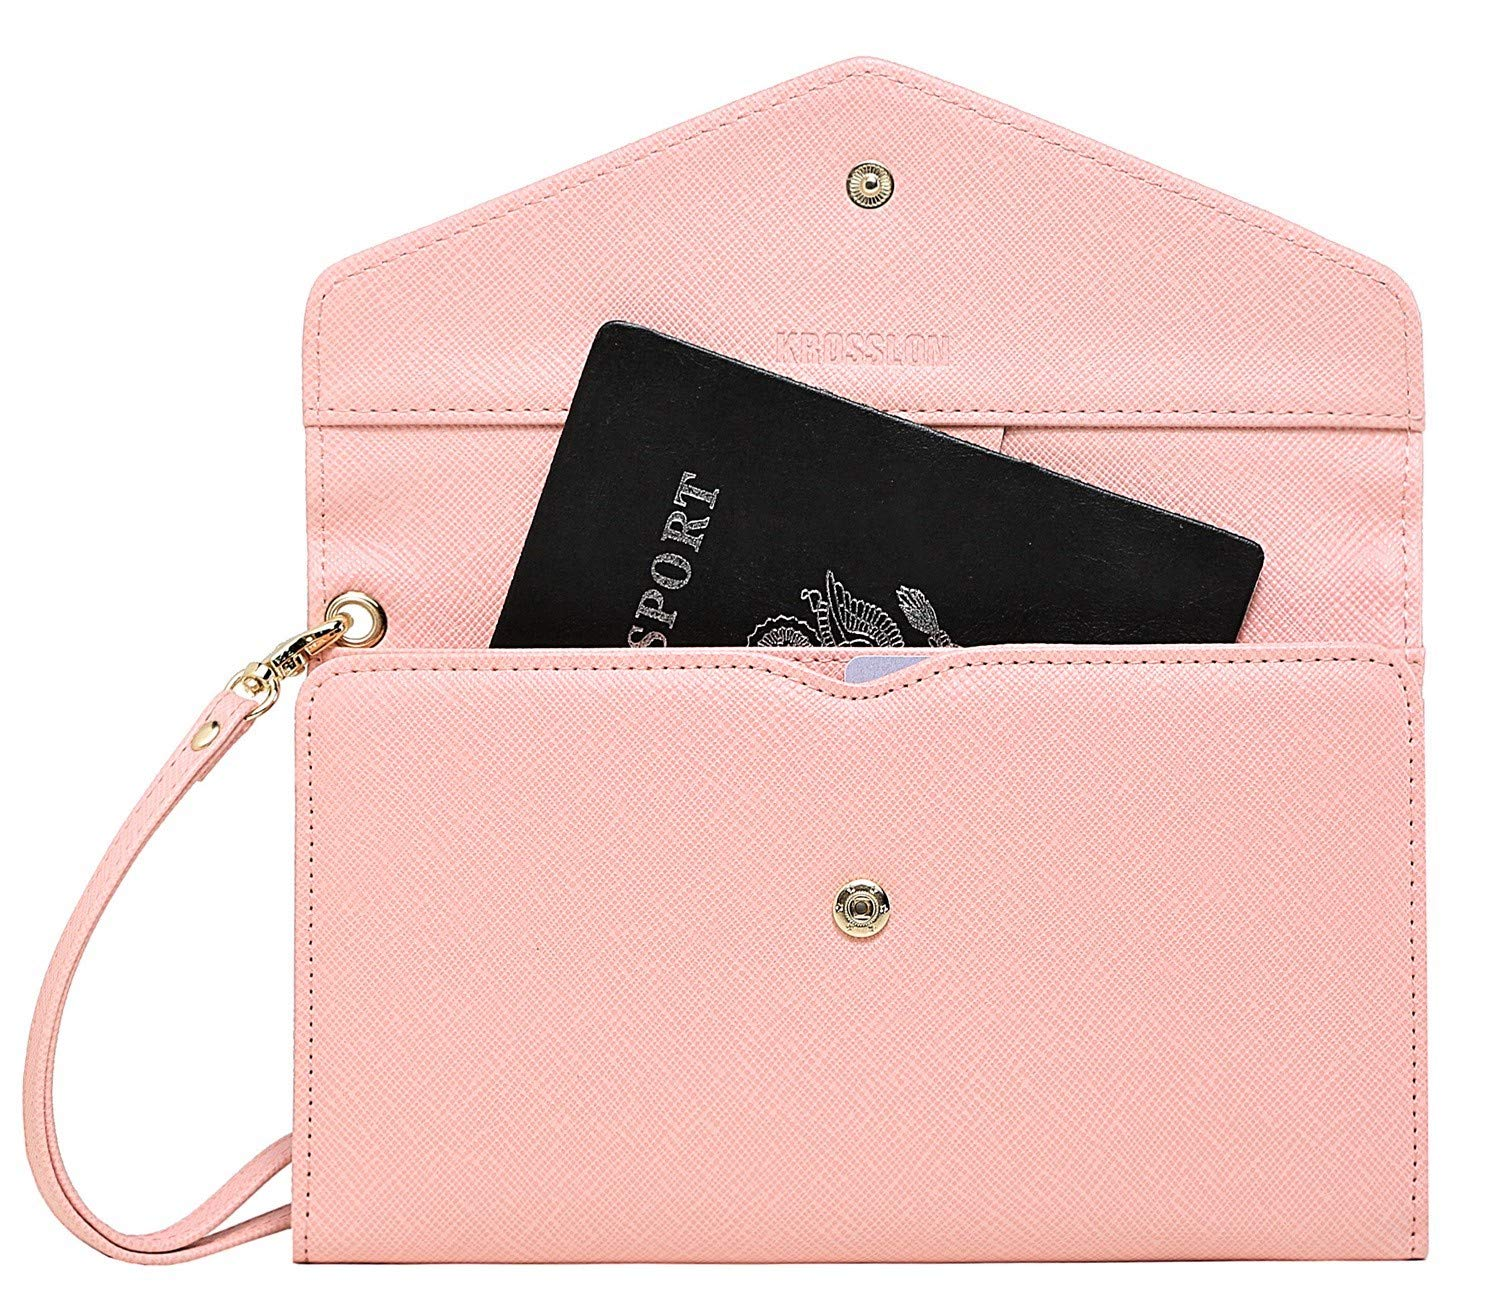 Krosslon Travel Passport Wallet for Women Rfid Wristlet Slim Family Document Holder, 205 Pastel Pink